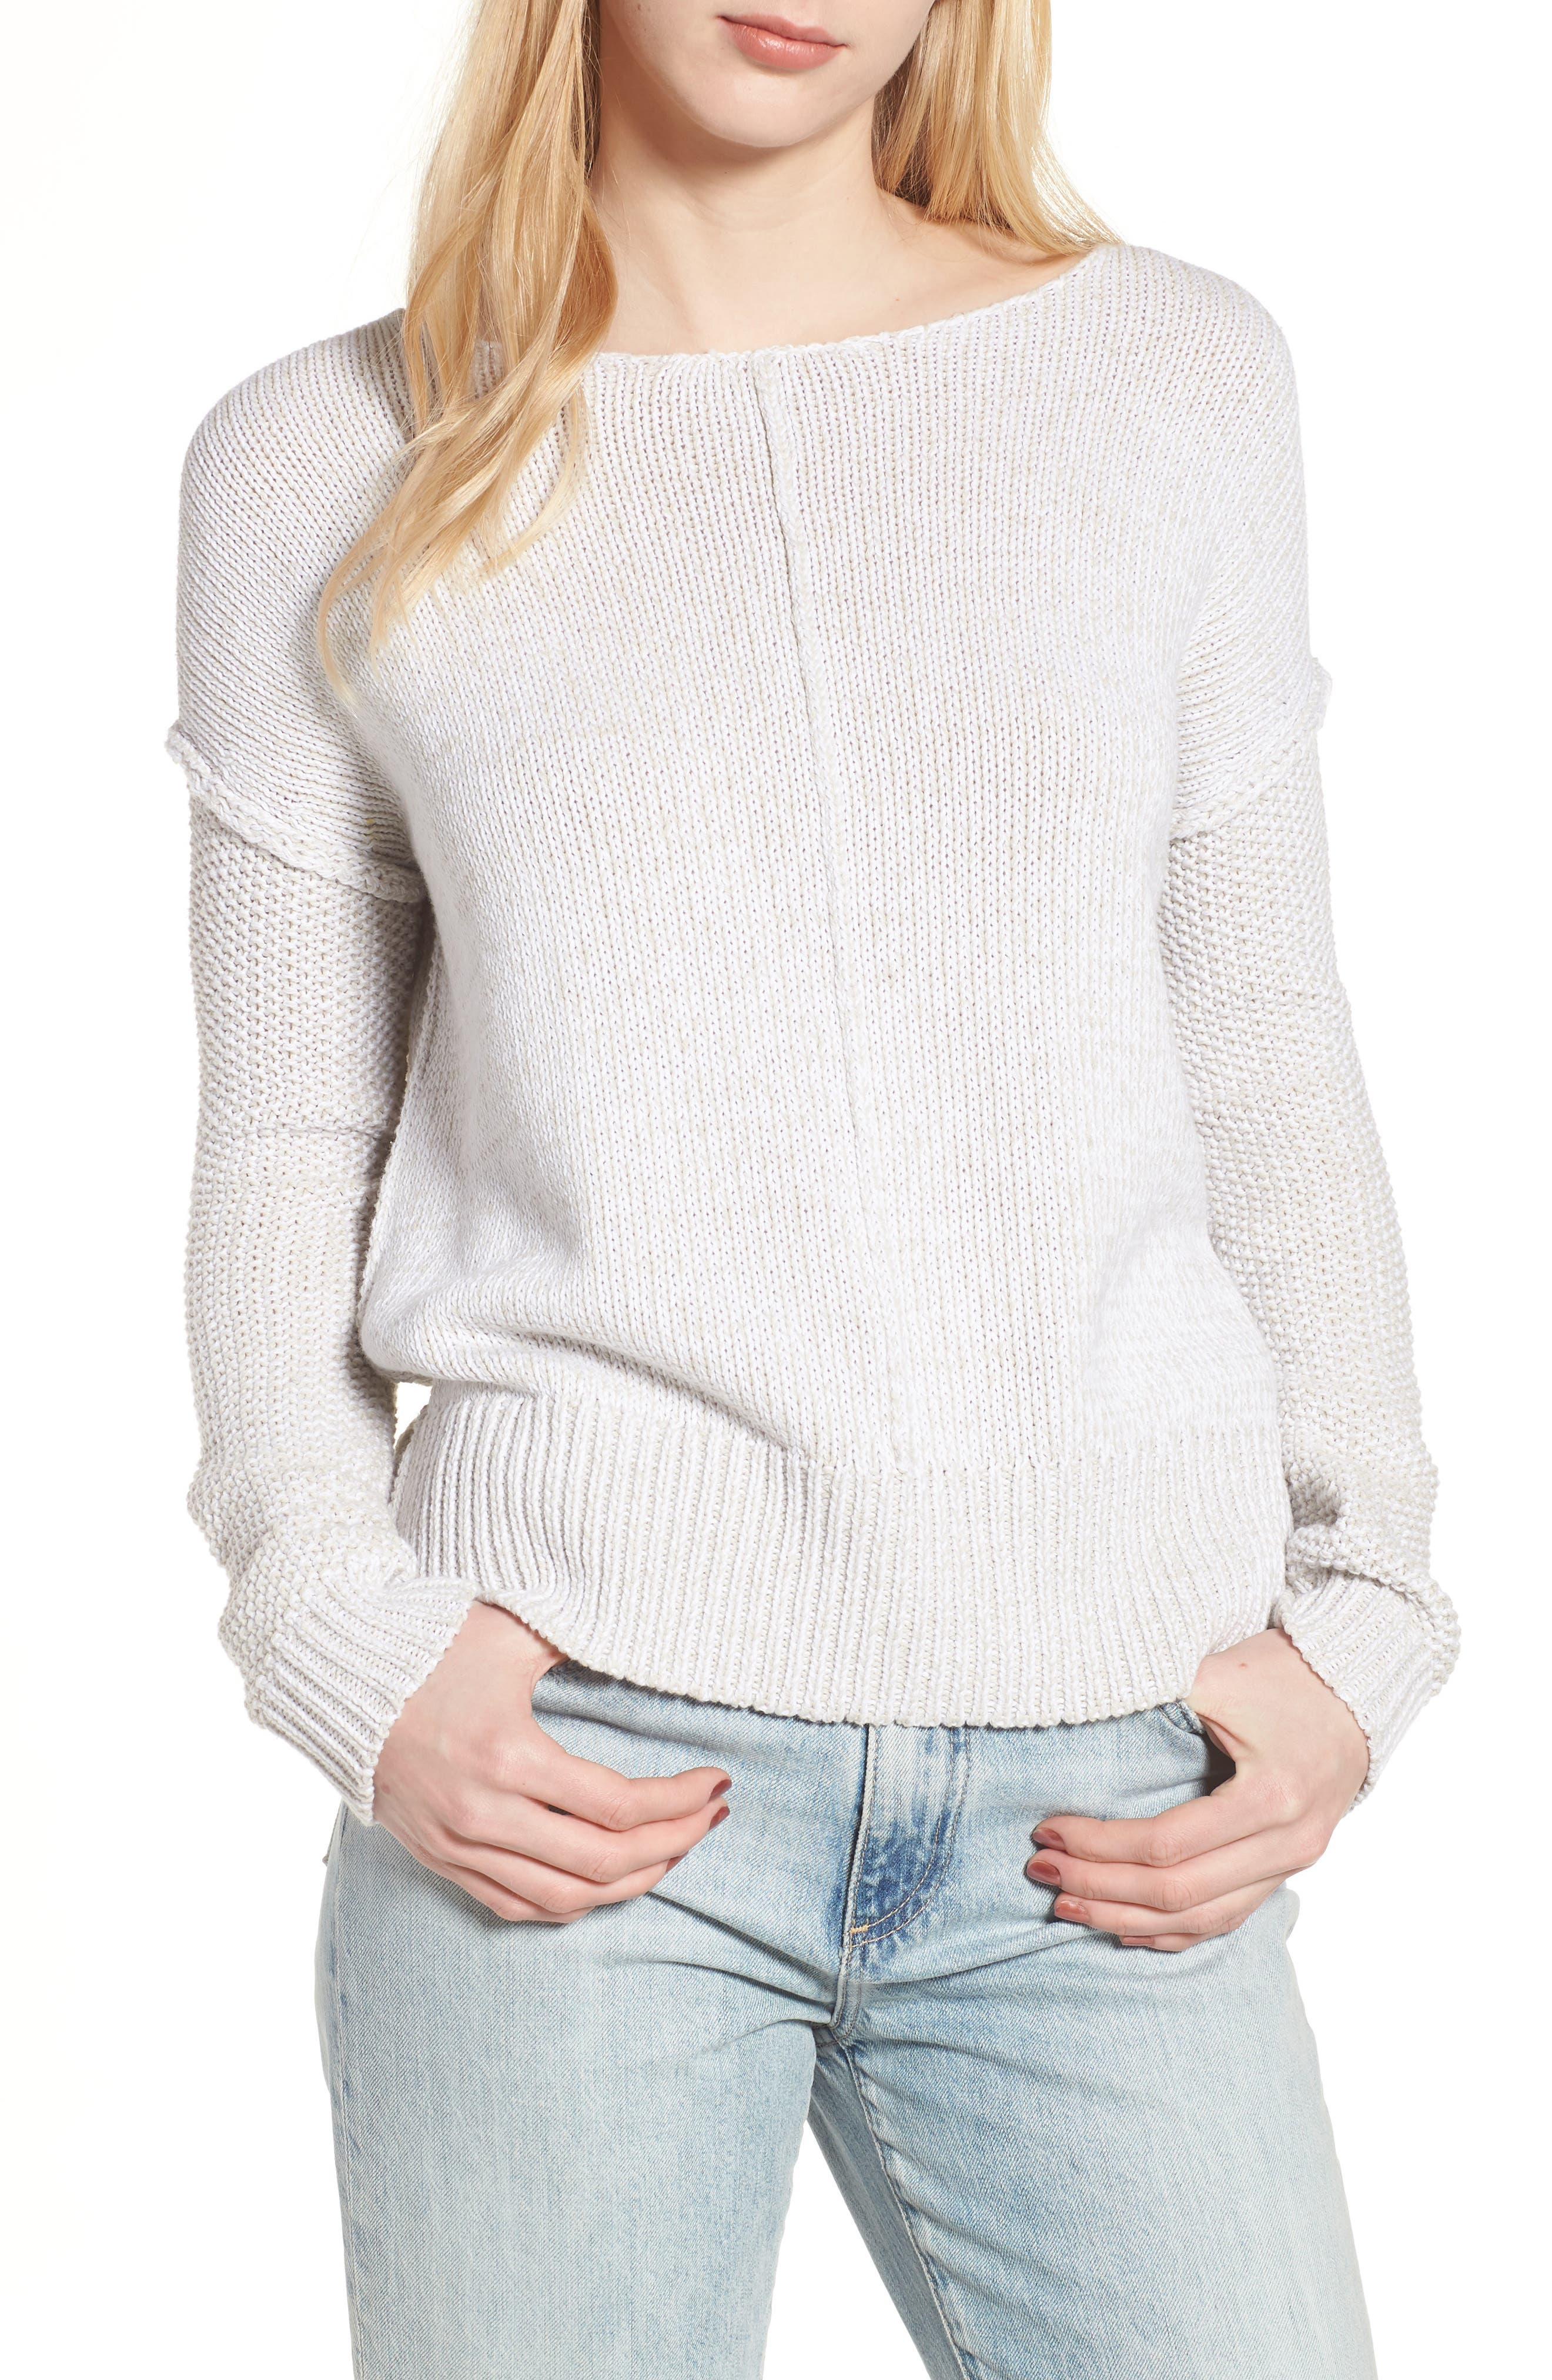 Lola Reversible Twist Sweater,                         Main,                         color, 100